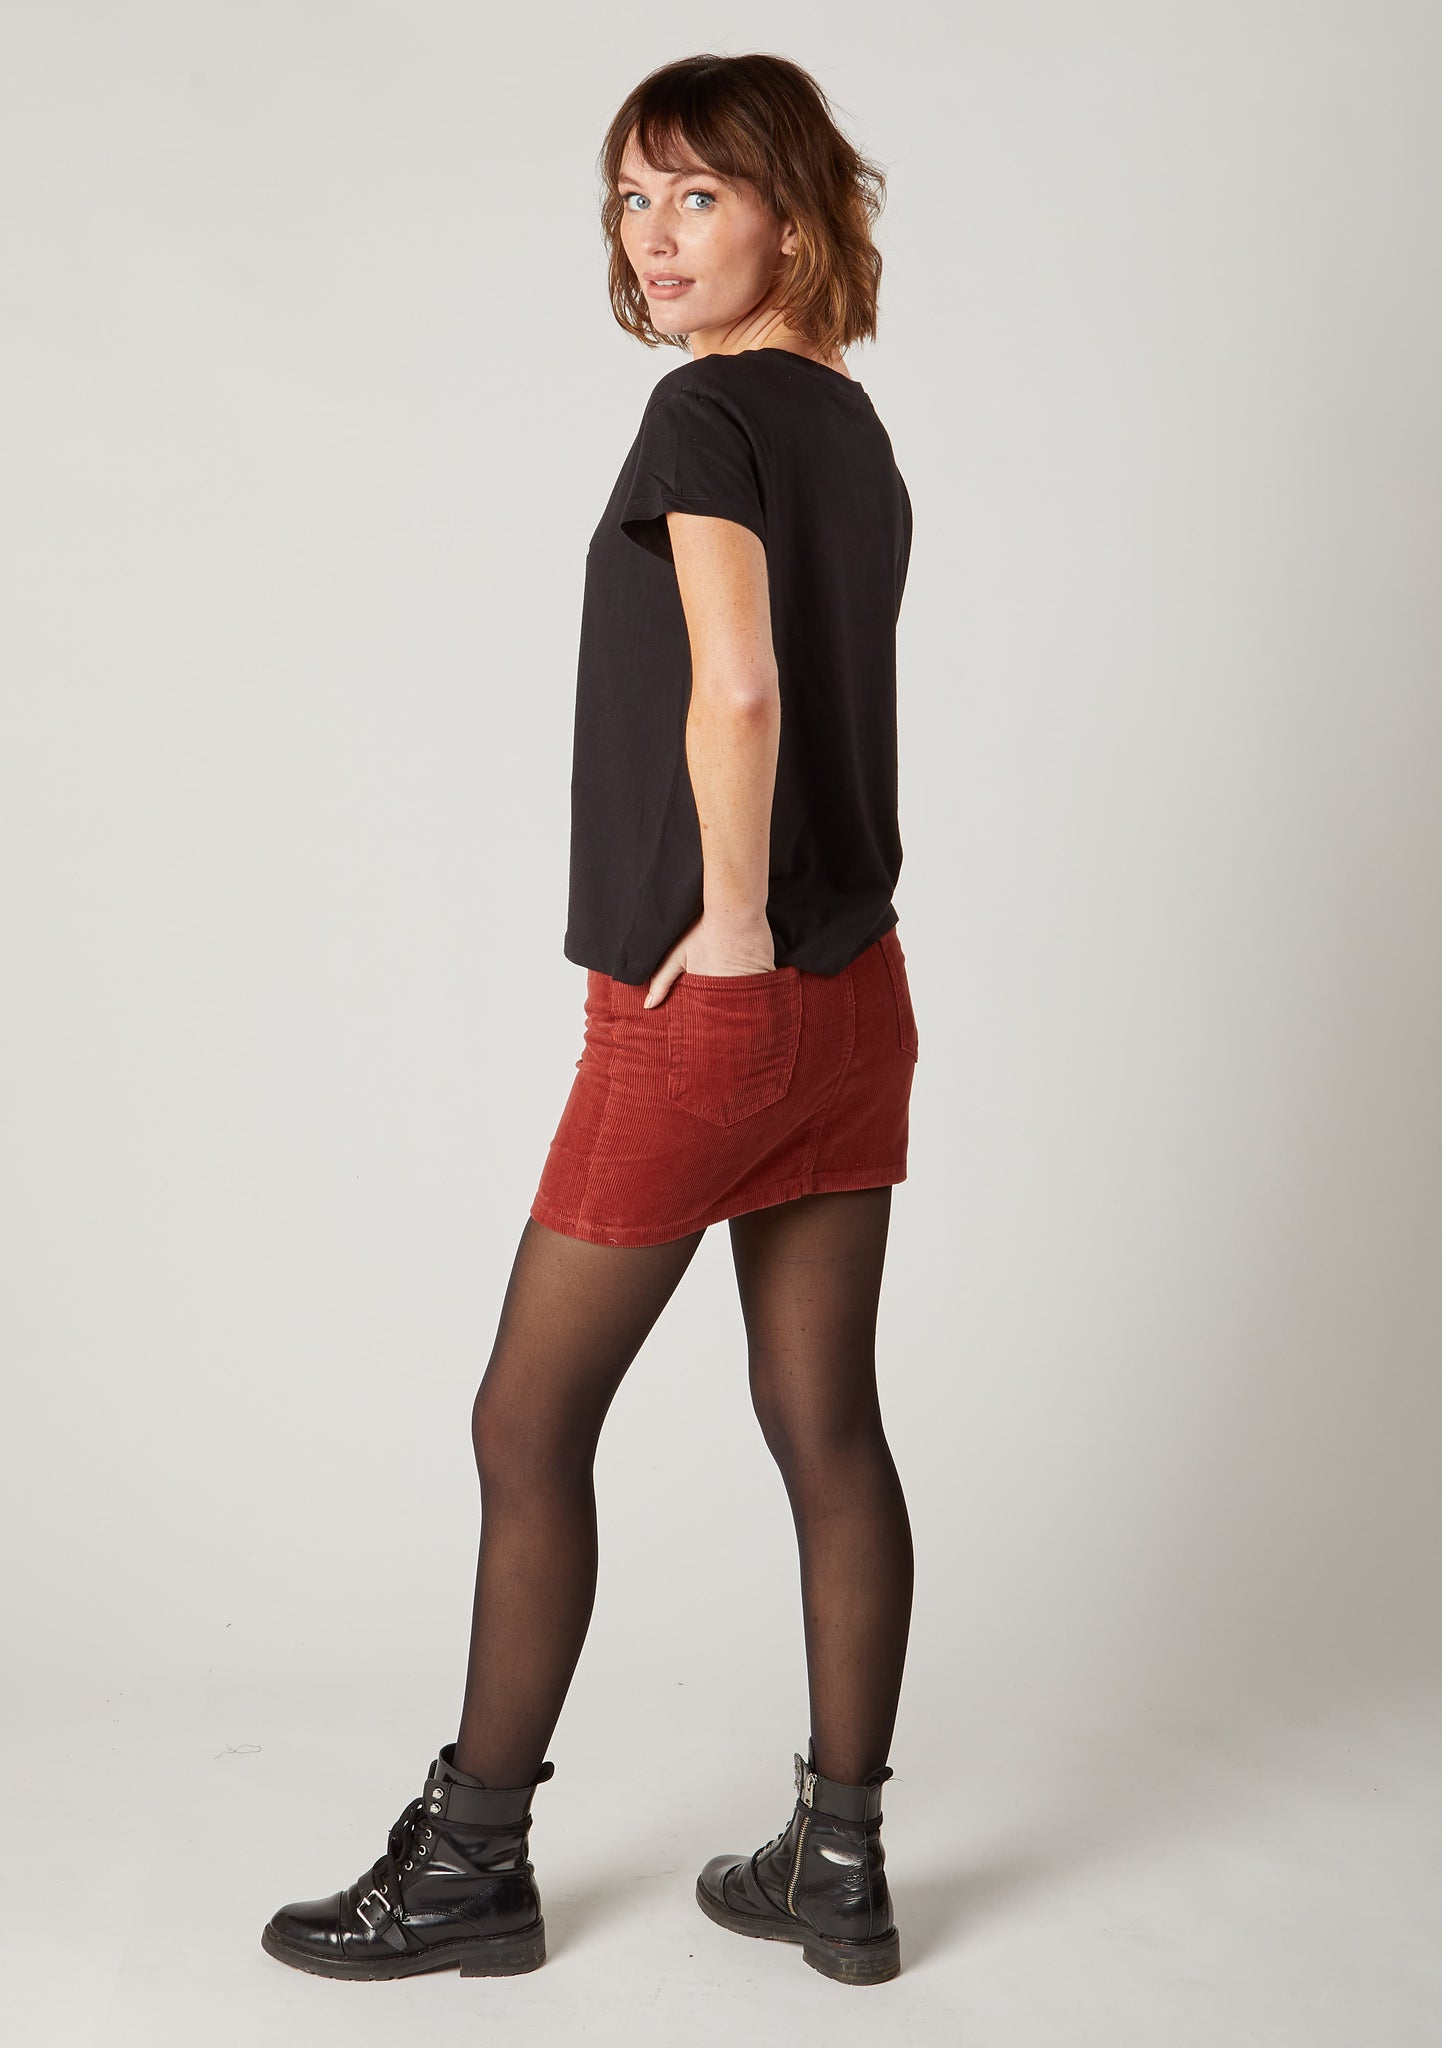 Two-thirds pose red corduroy mini skirt with hand in back pocket